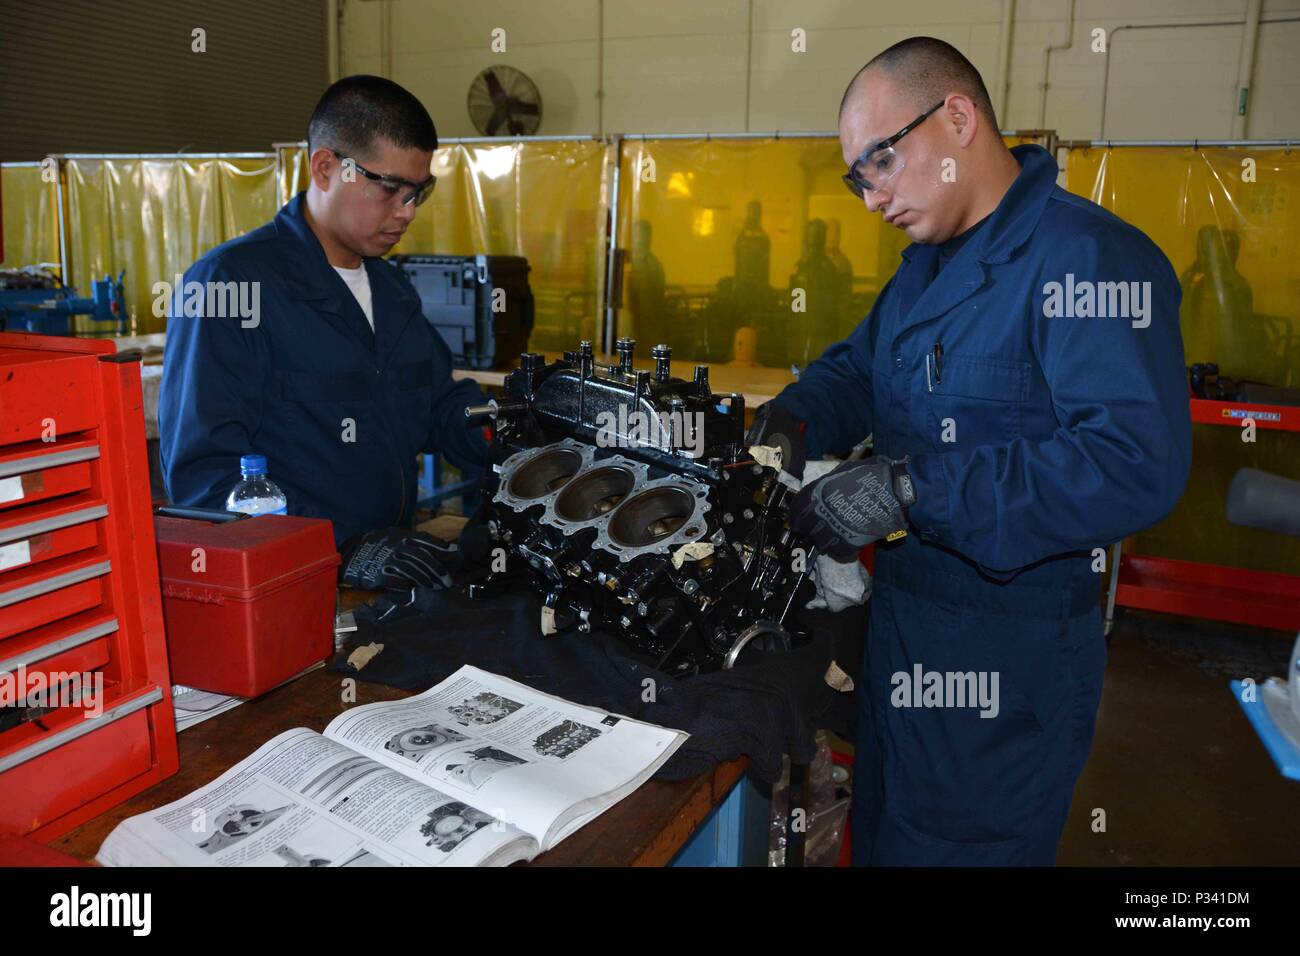 Marine special operations school stock photos marine for Outboard motor repair training online